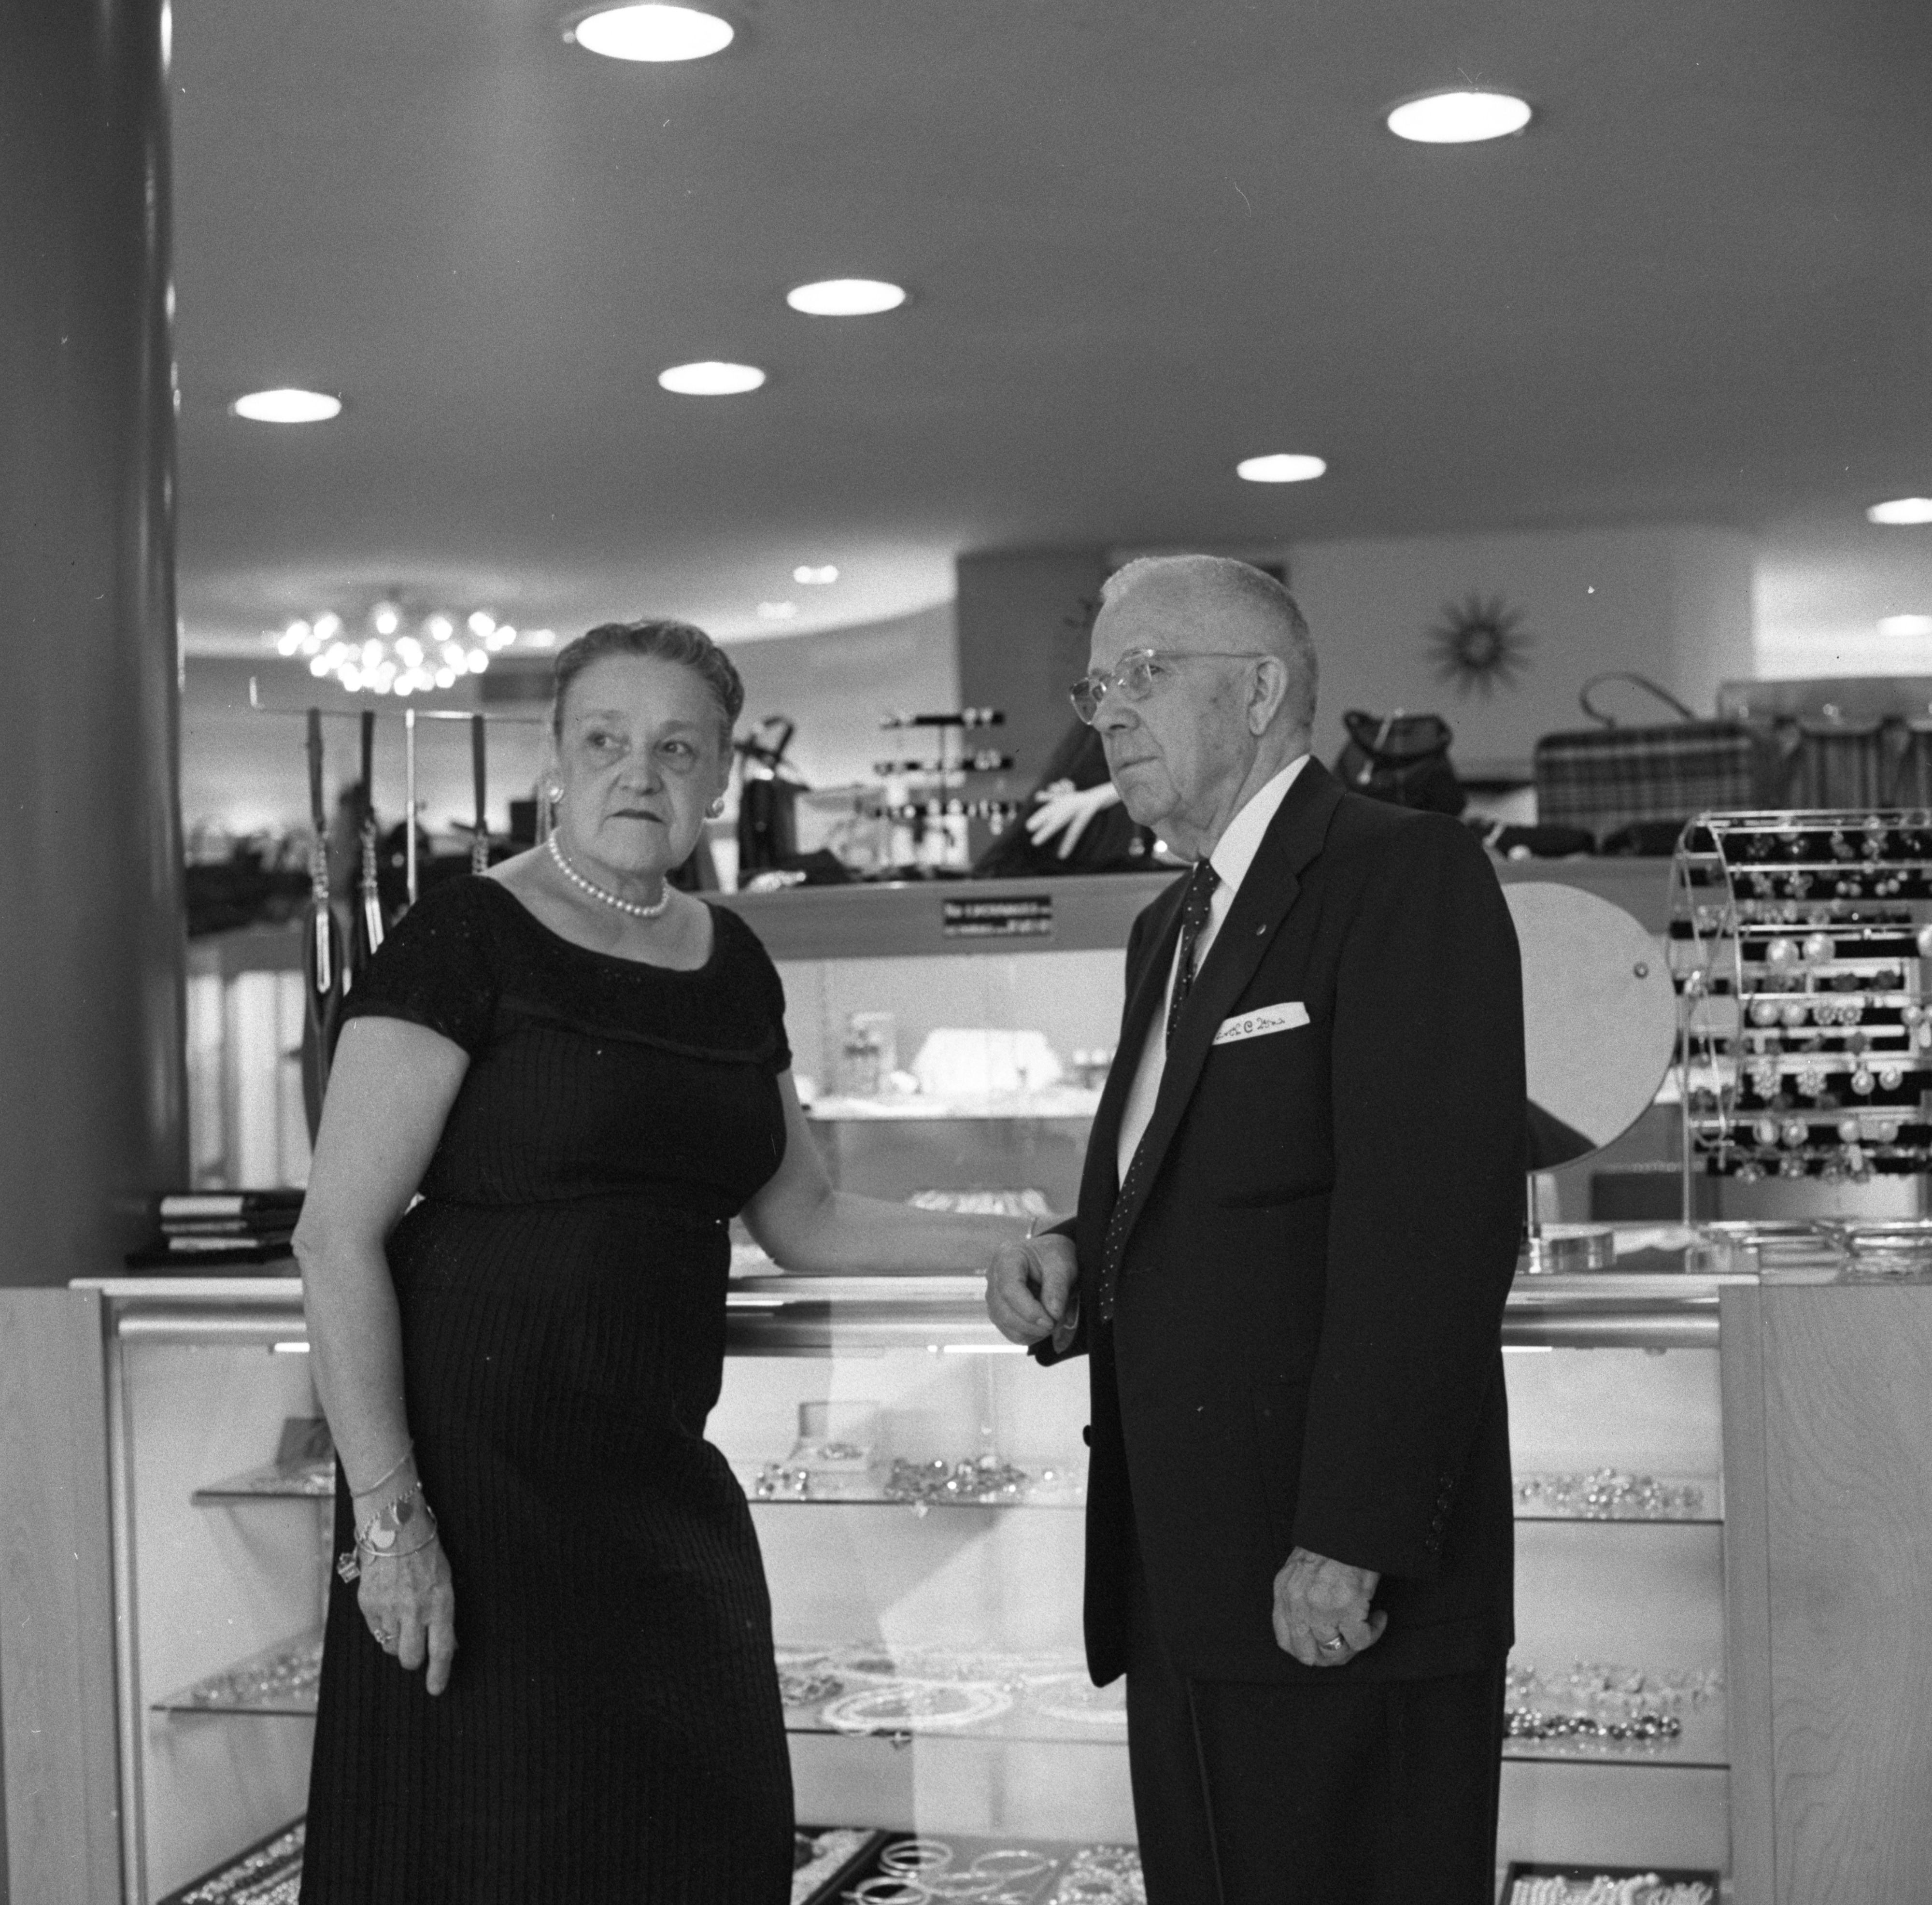 Mr. and Mrs. G. P. Collins - Owners of the Collins Shop, September 1958 image